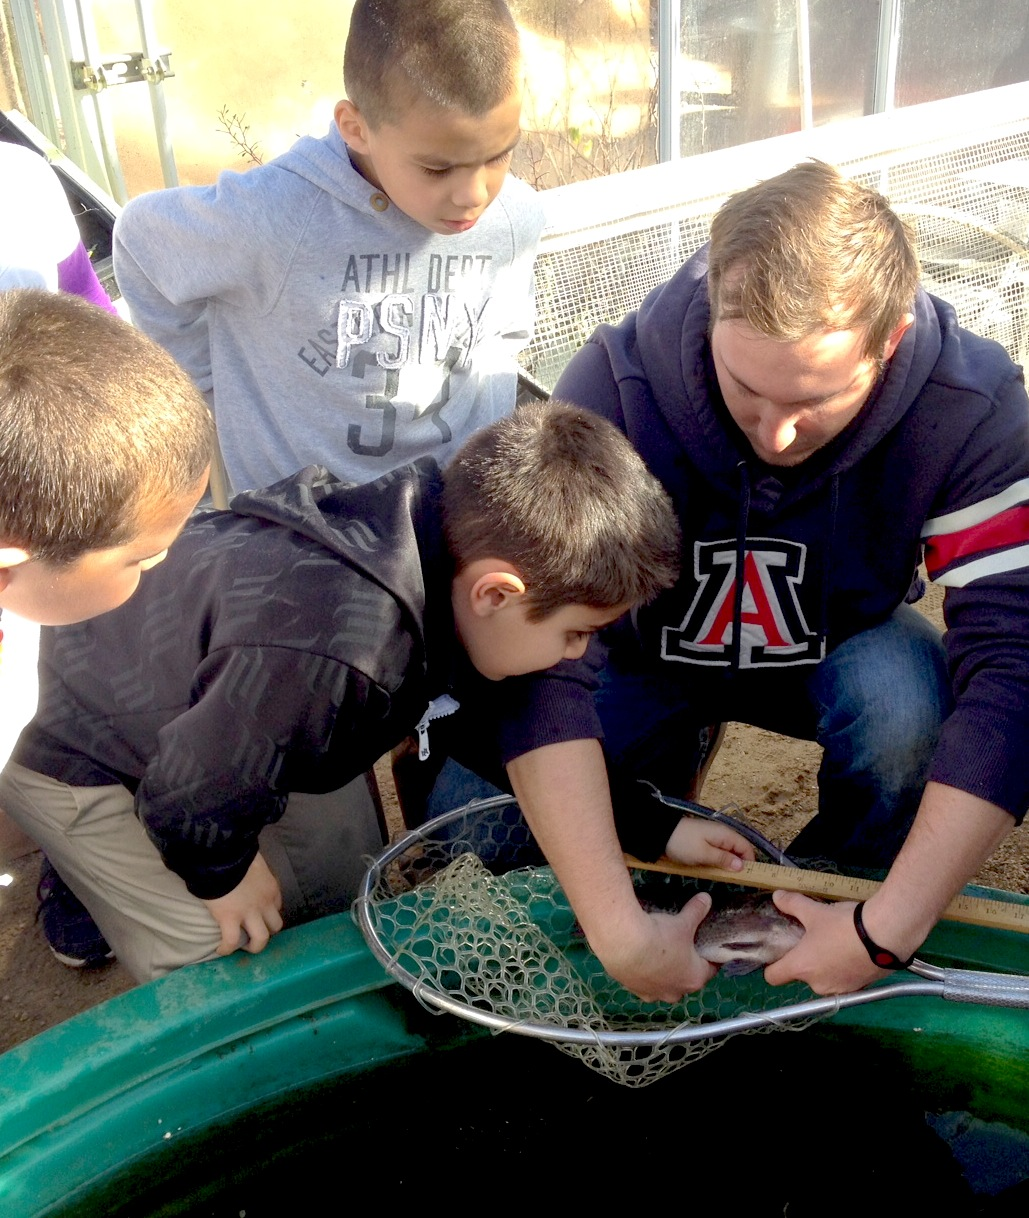 Students working with aquaculture in community garden project